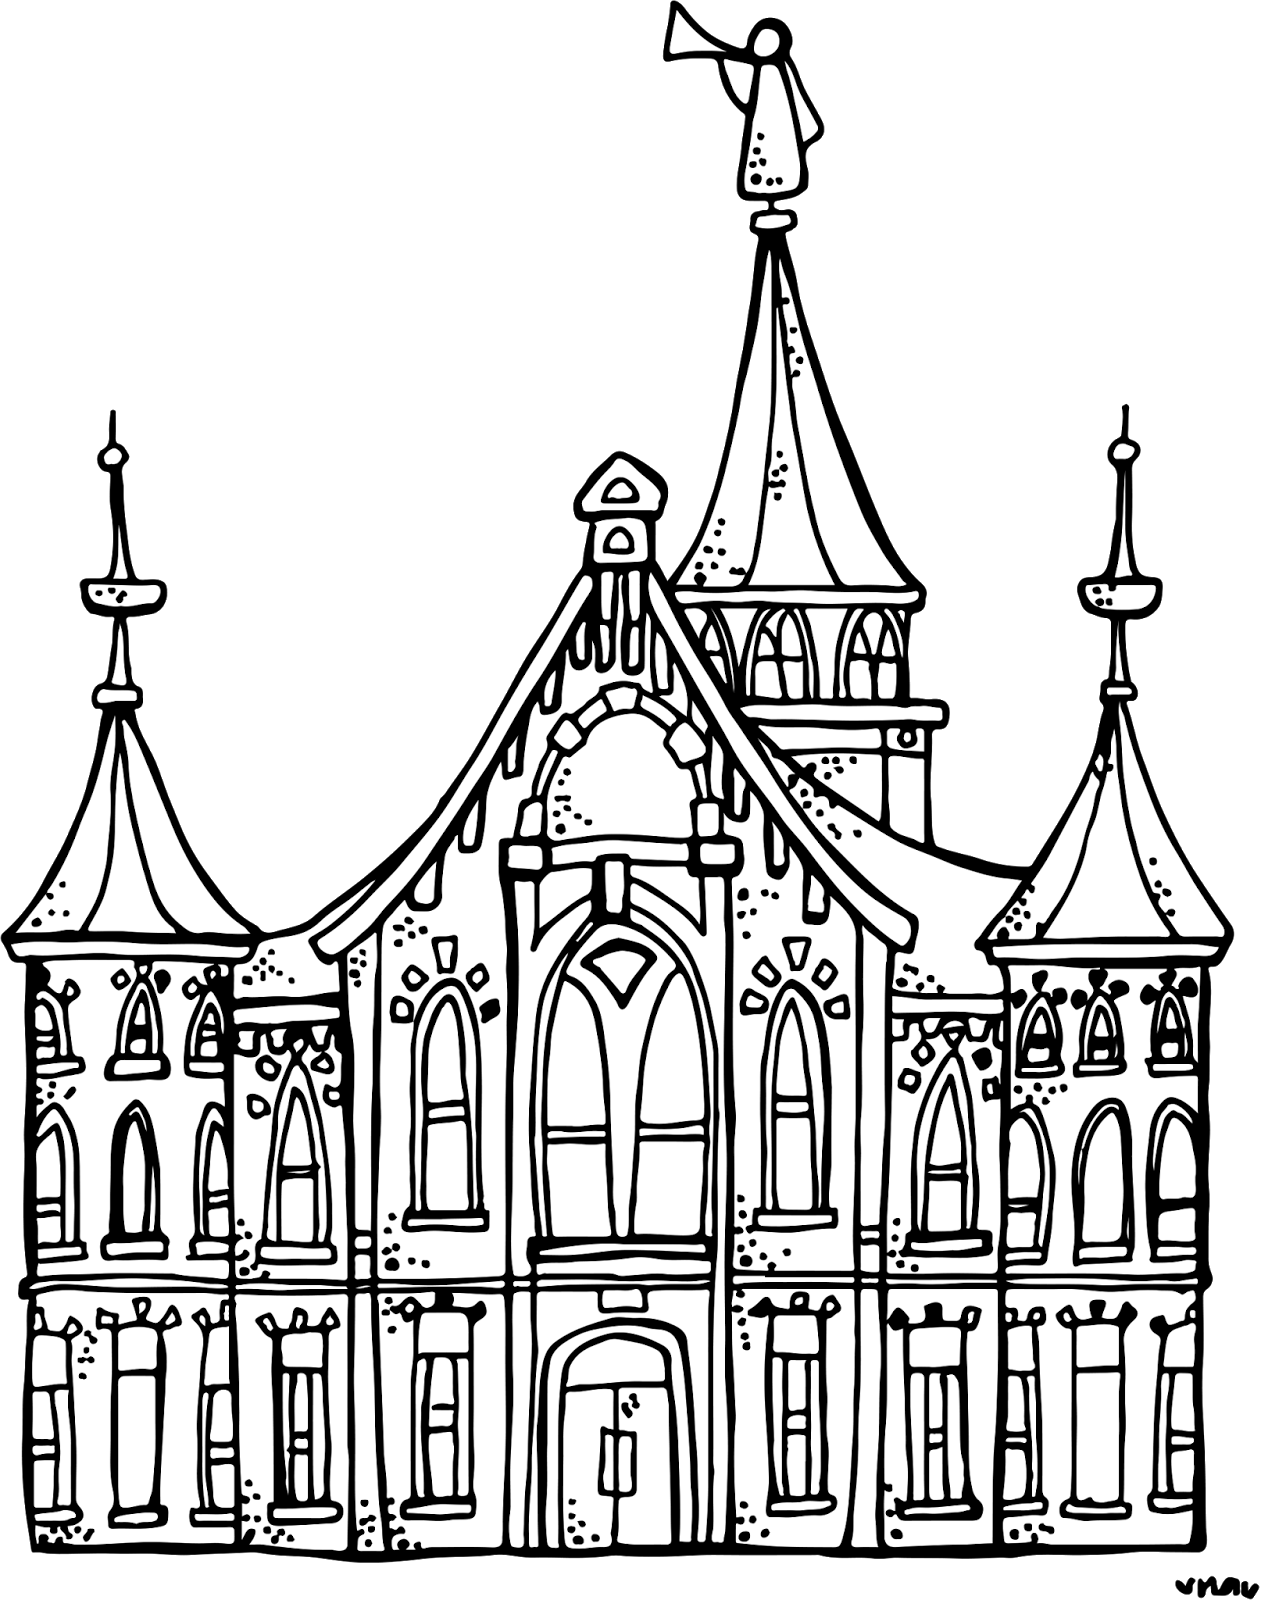 Book of mormon stories black and white clipart clip art transparent library Melonheadz LDS illustrating: Provo City Center Temple :) | coloring ... clip art transparent library